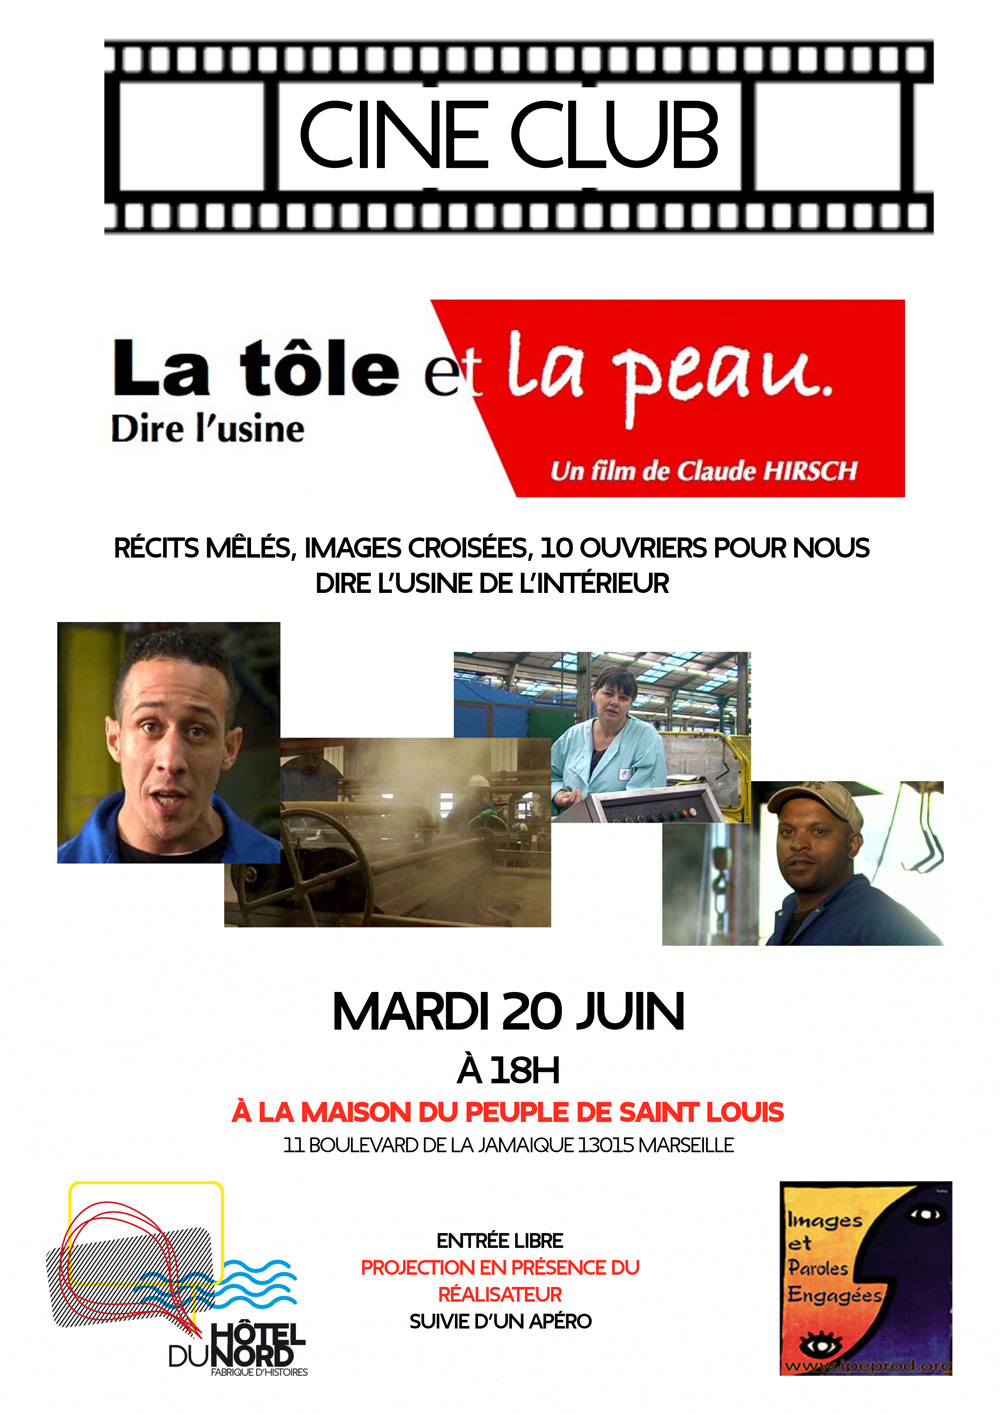 projection à Saint Louis du film la tole et la peau de Claude Hirsh